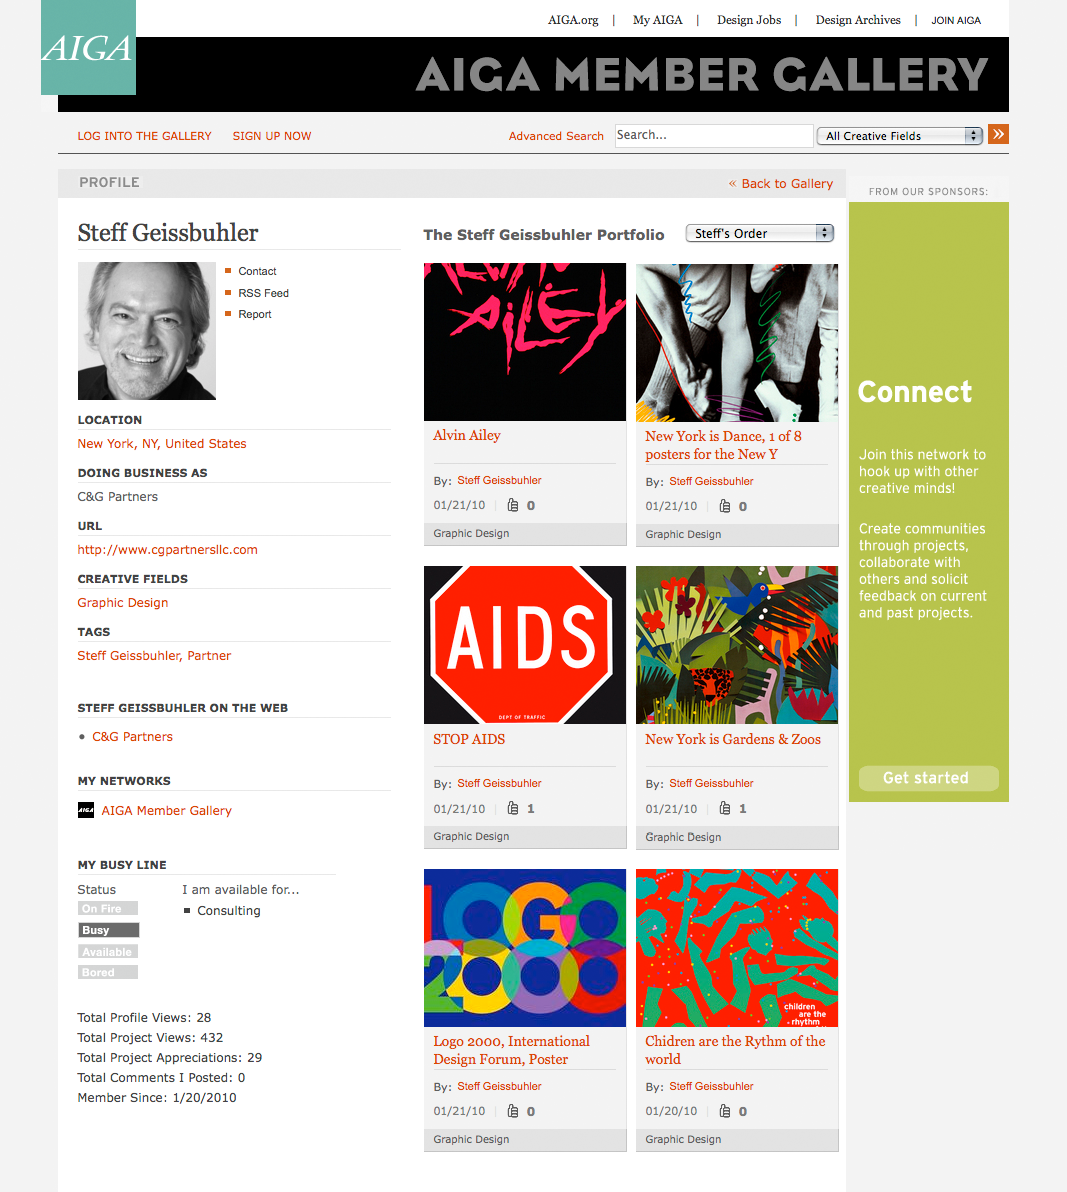 Project image 3 for Interactive Member Gallery, American Institute of Graphic Arts